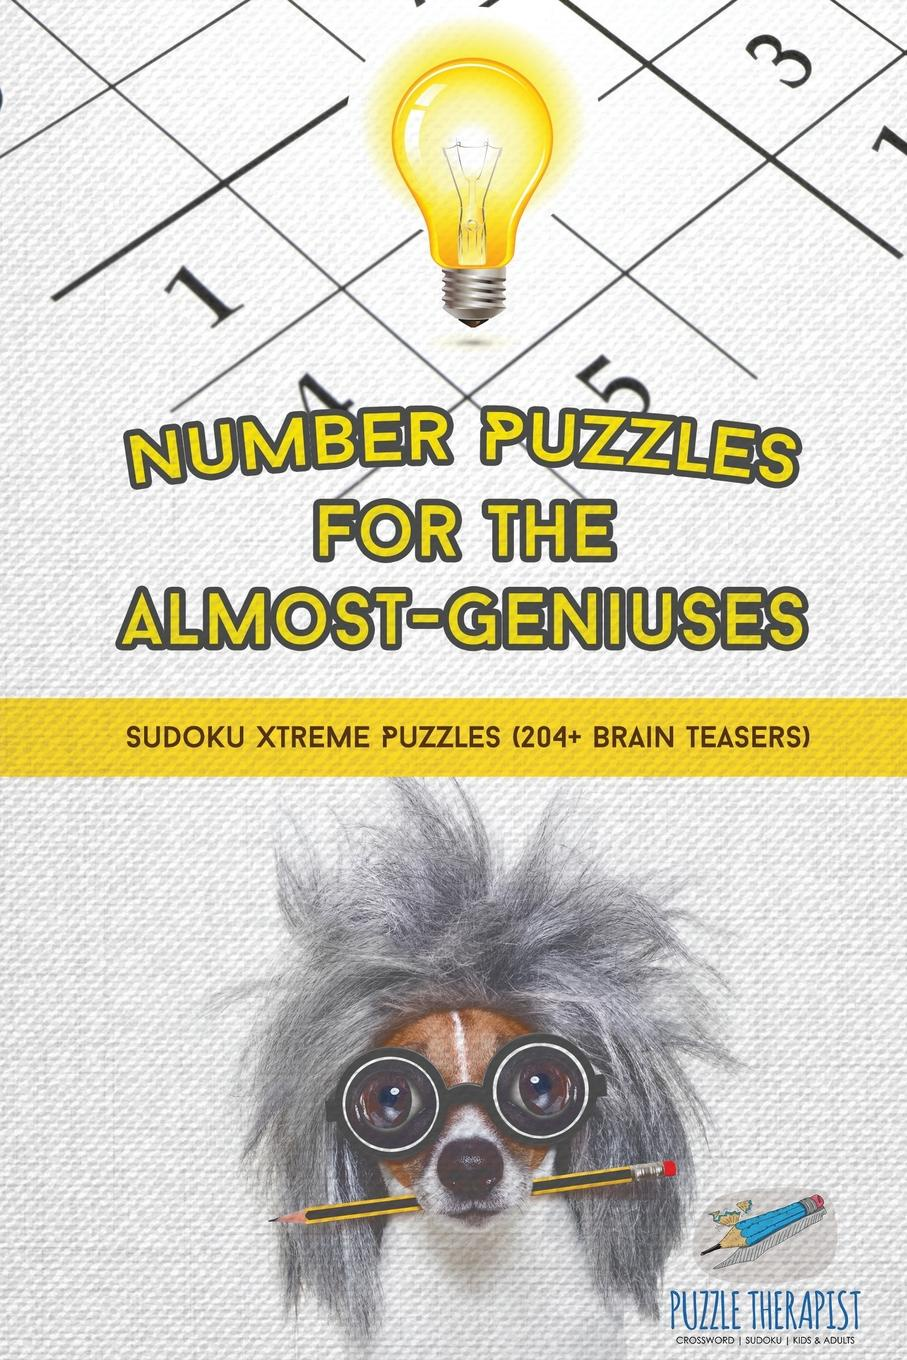 Puzzle Therapist Number Puzzles for the Almost-Geniuses . Sudoku Xtreme Puzzles (204+ Brain Teasers) your brain is almost perfect